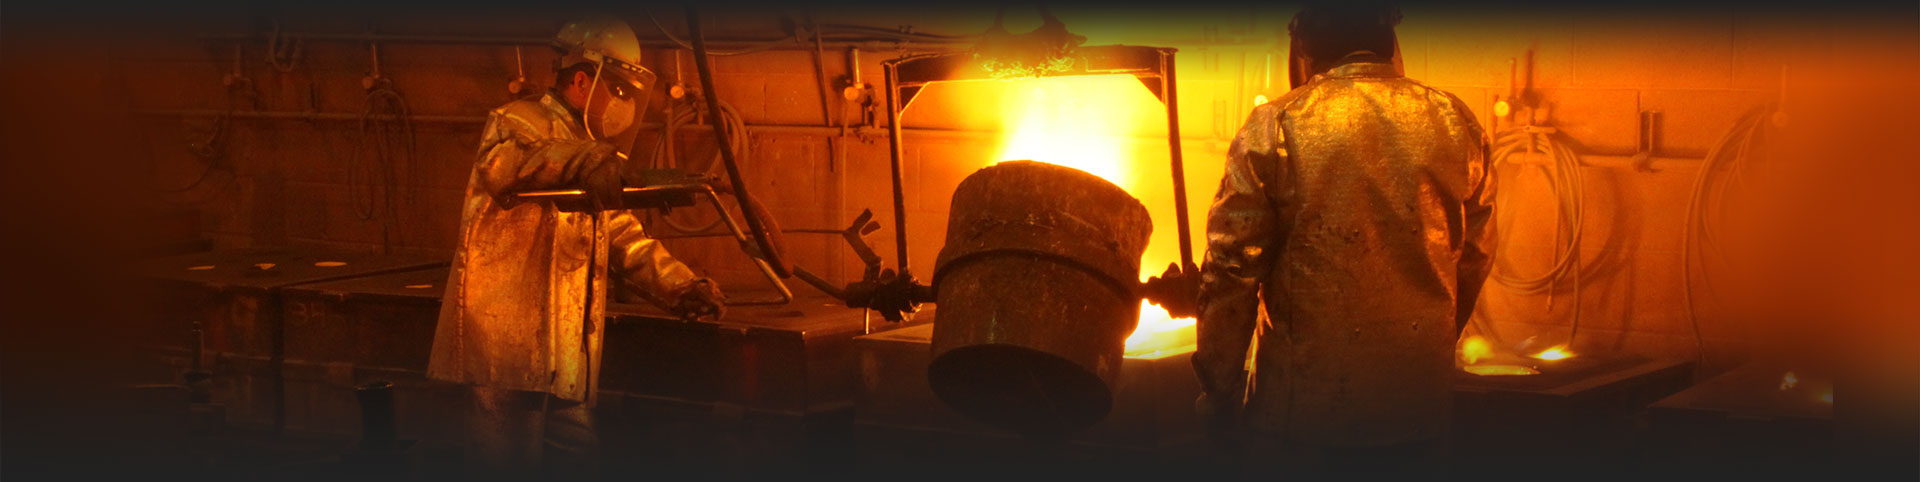 wisconsin foundry, stainless foundry, steel castings, investment sand foundry